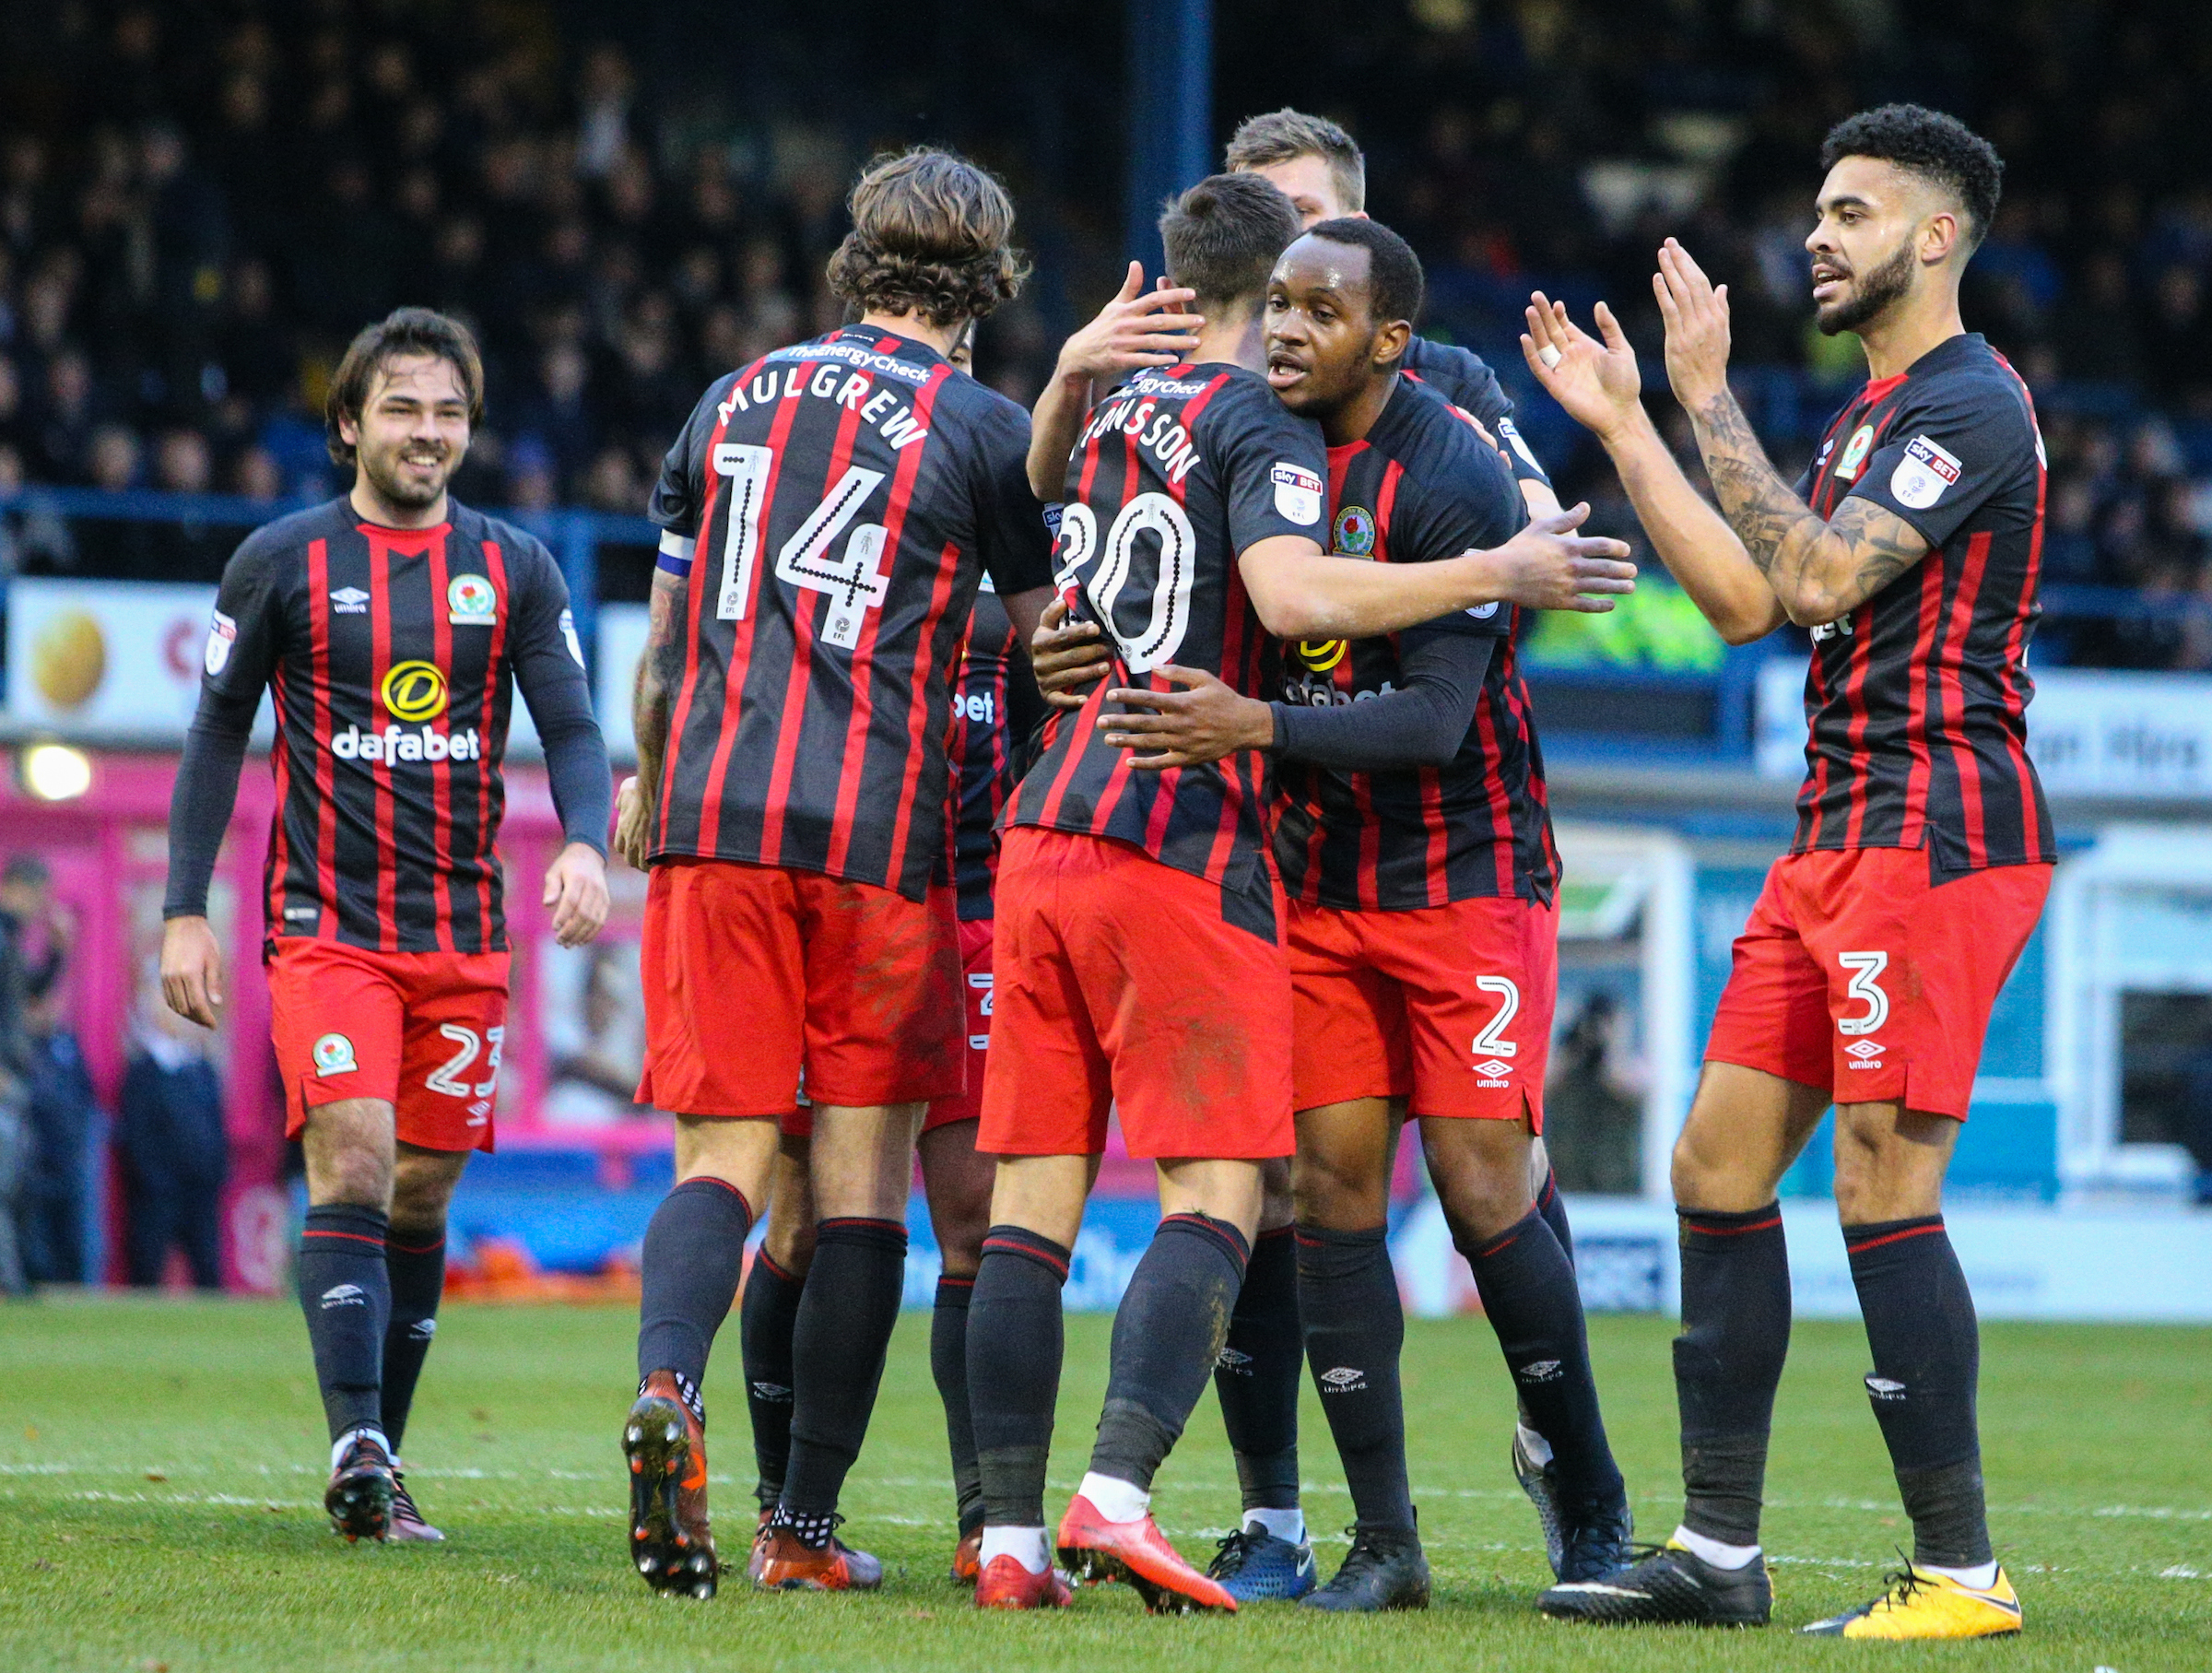 Rovers won the reverse fixture at Bury in November 3-0